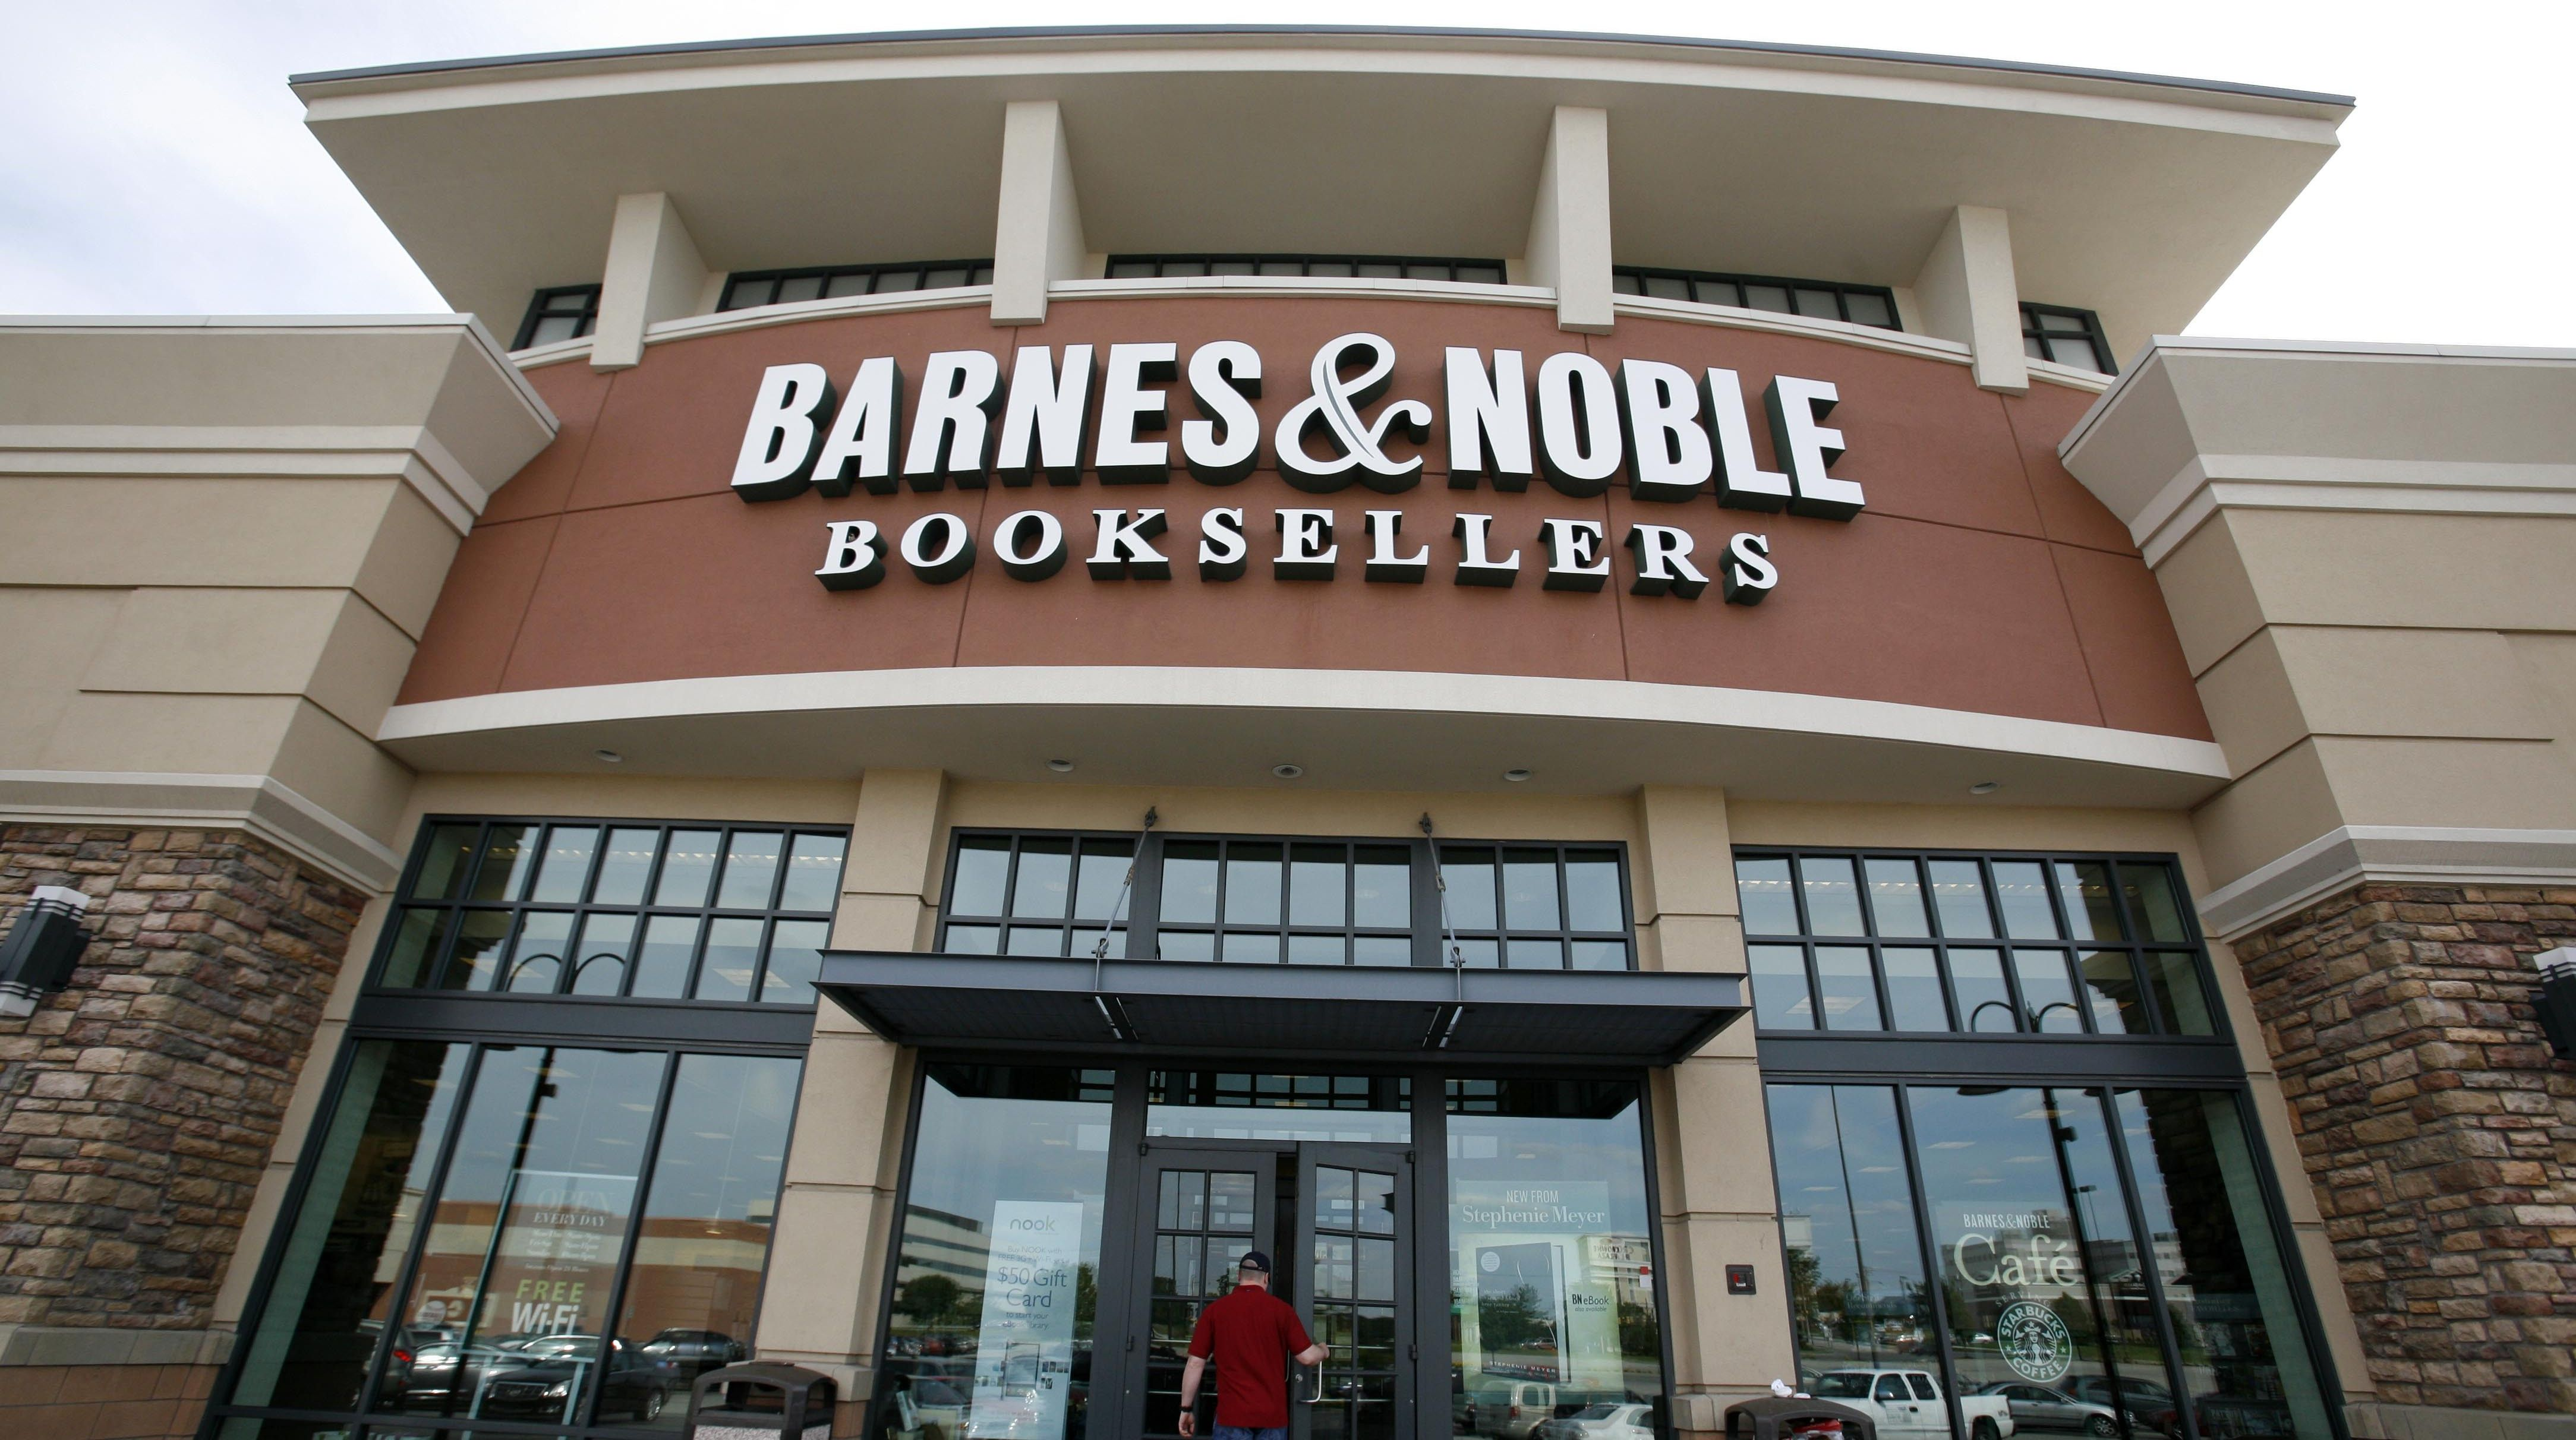 Image: Barnes & Noble hosts free download of al-Qaeda bomb-making manuals for terrorists